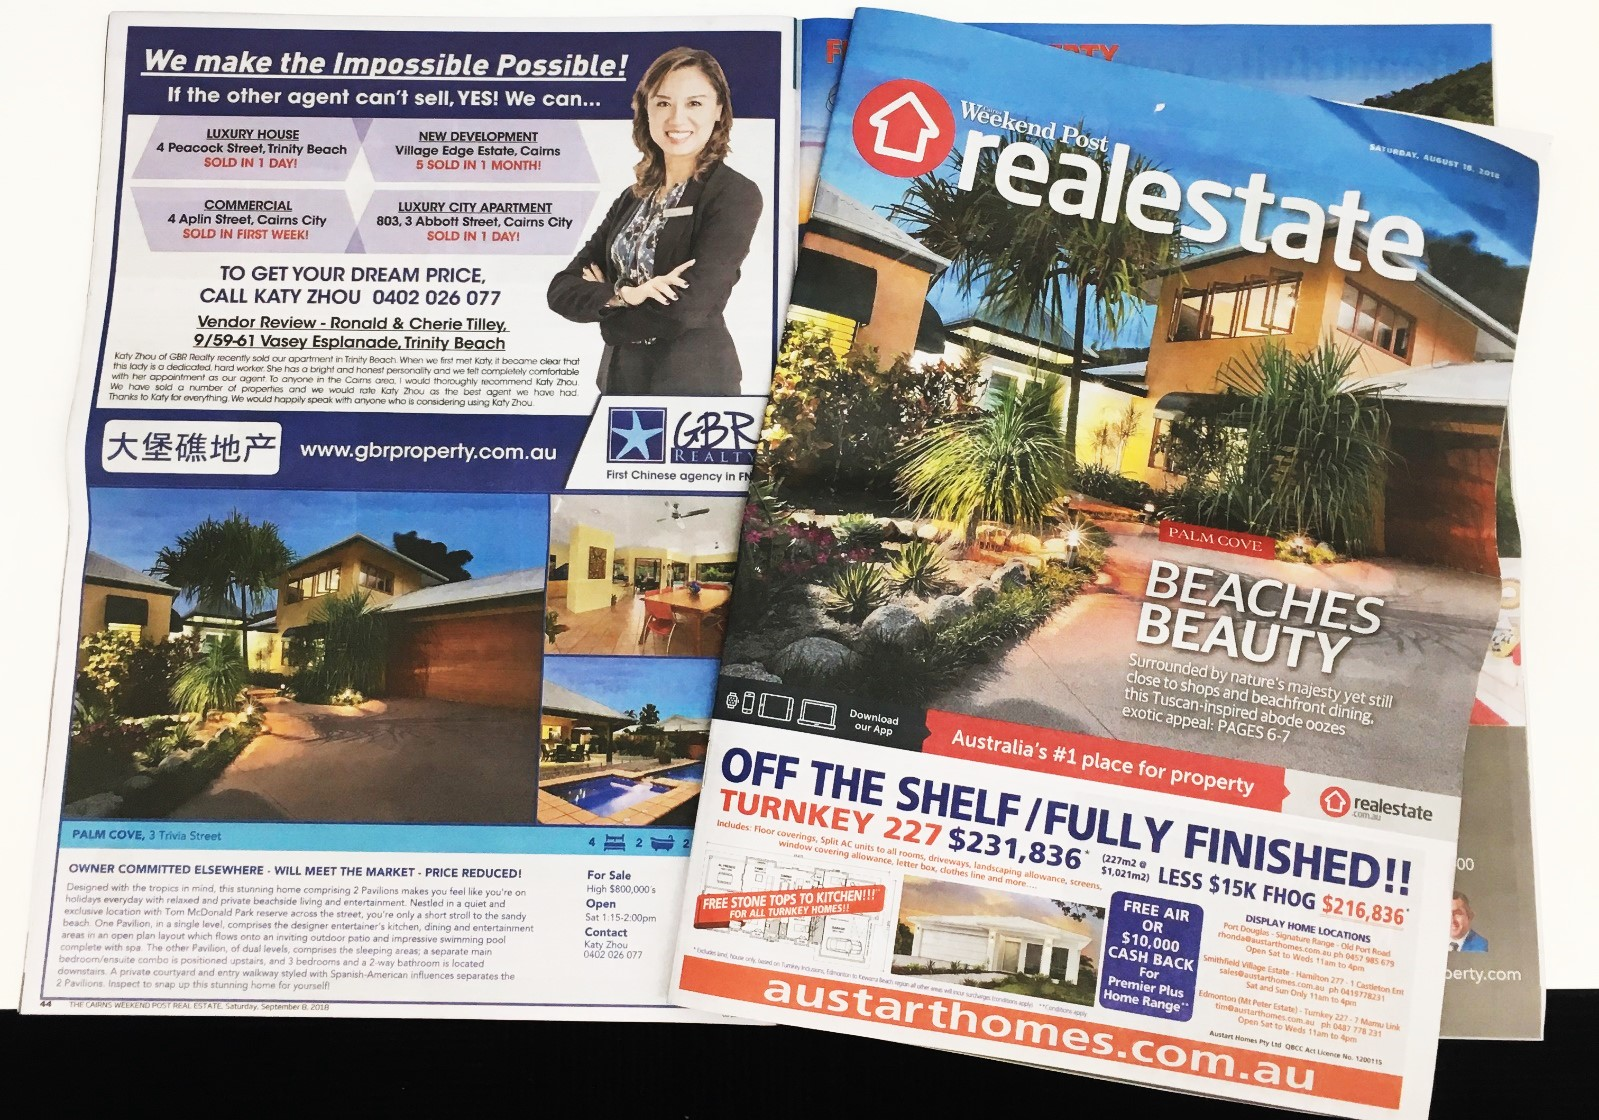 We have been on the front page of The Cairns Post Realtor marketing a prestige home in Palm Cove as well as showcasing the recent sales we have done for our clients